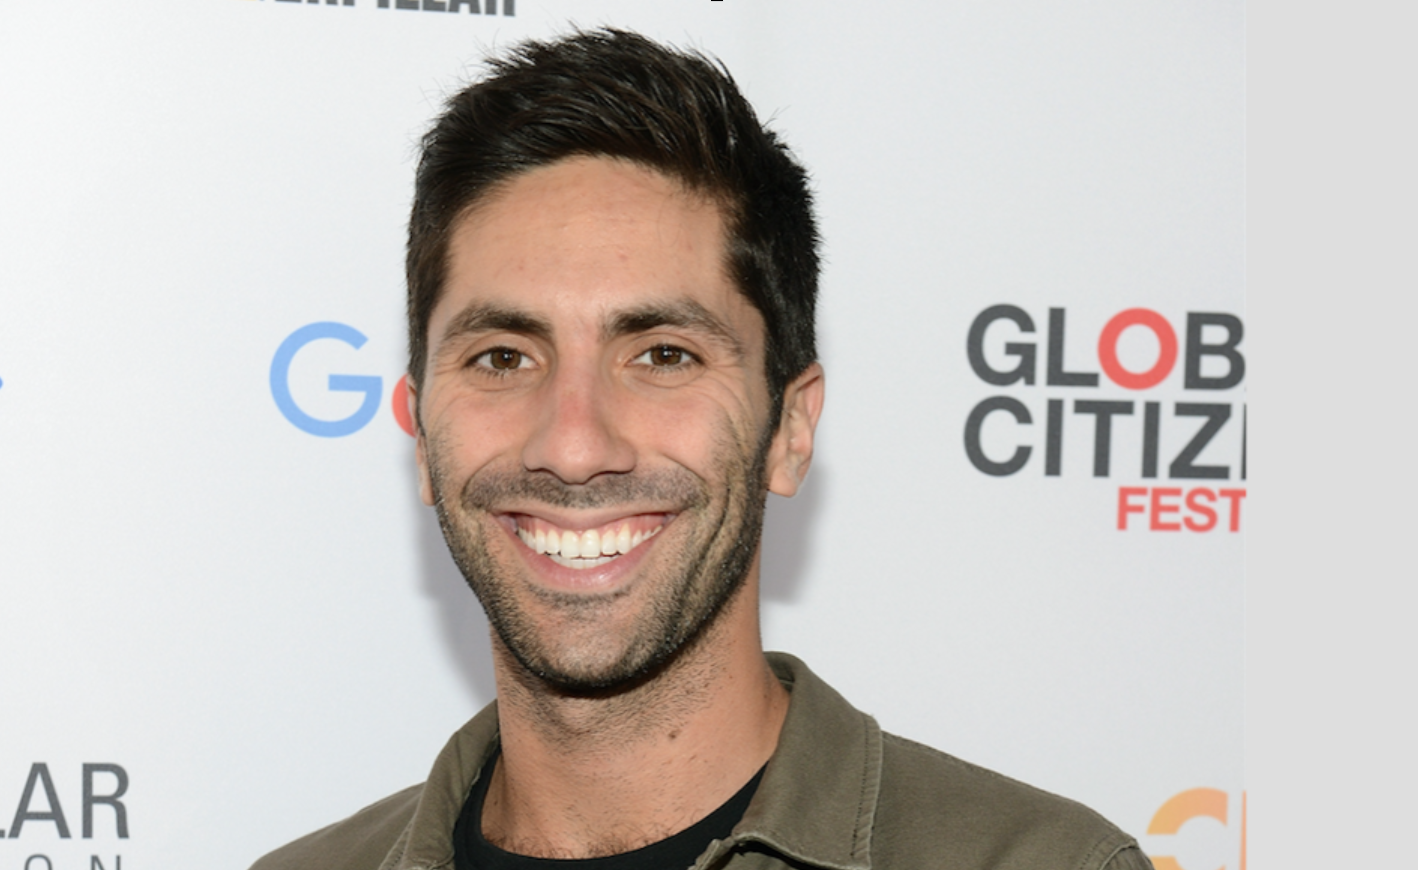 'Catfish' Host Nev Schulman Accused of Sexual Misconduct